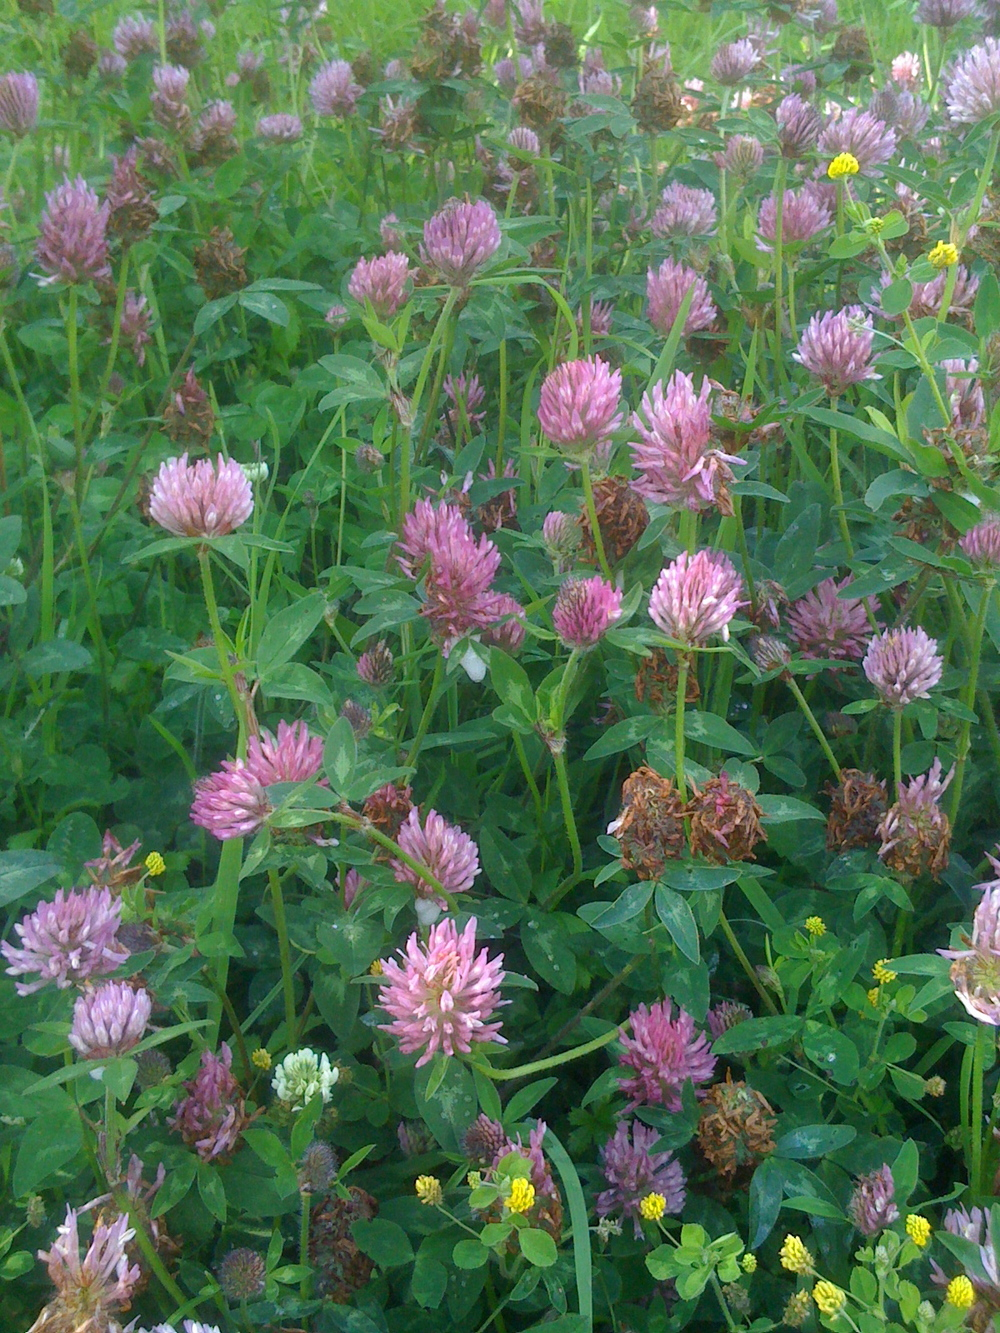 Red Clover, Trifolium pratense, has a long reputation as a drink for cleansing the lymphatic vessels through which cancer is thought to spread.